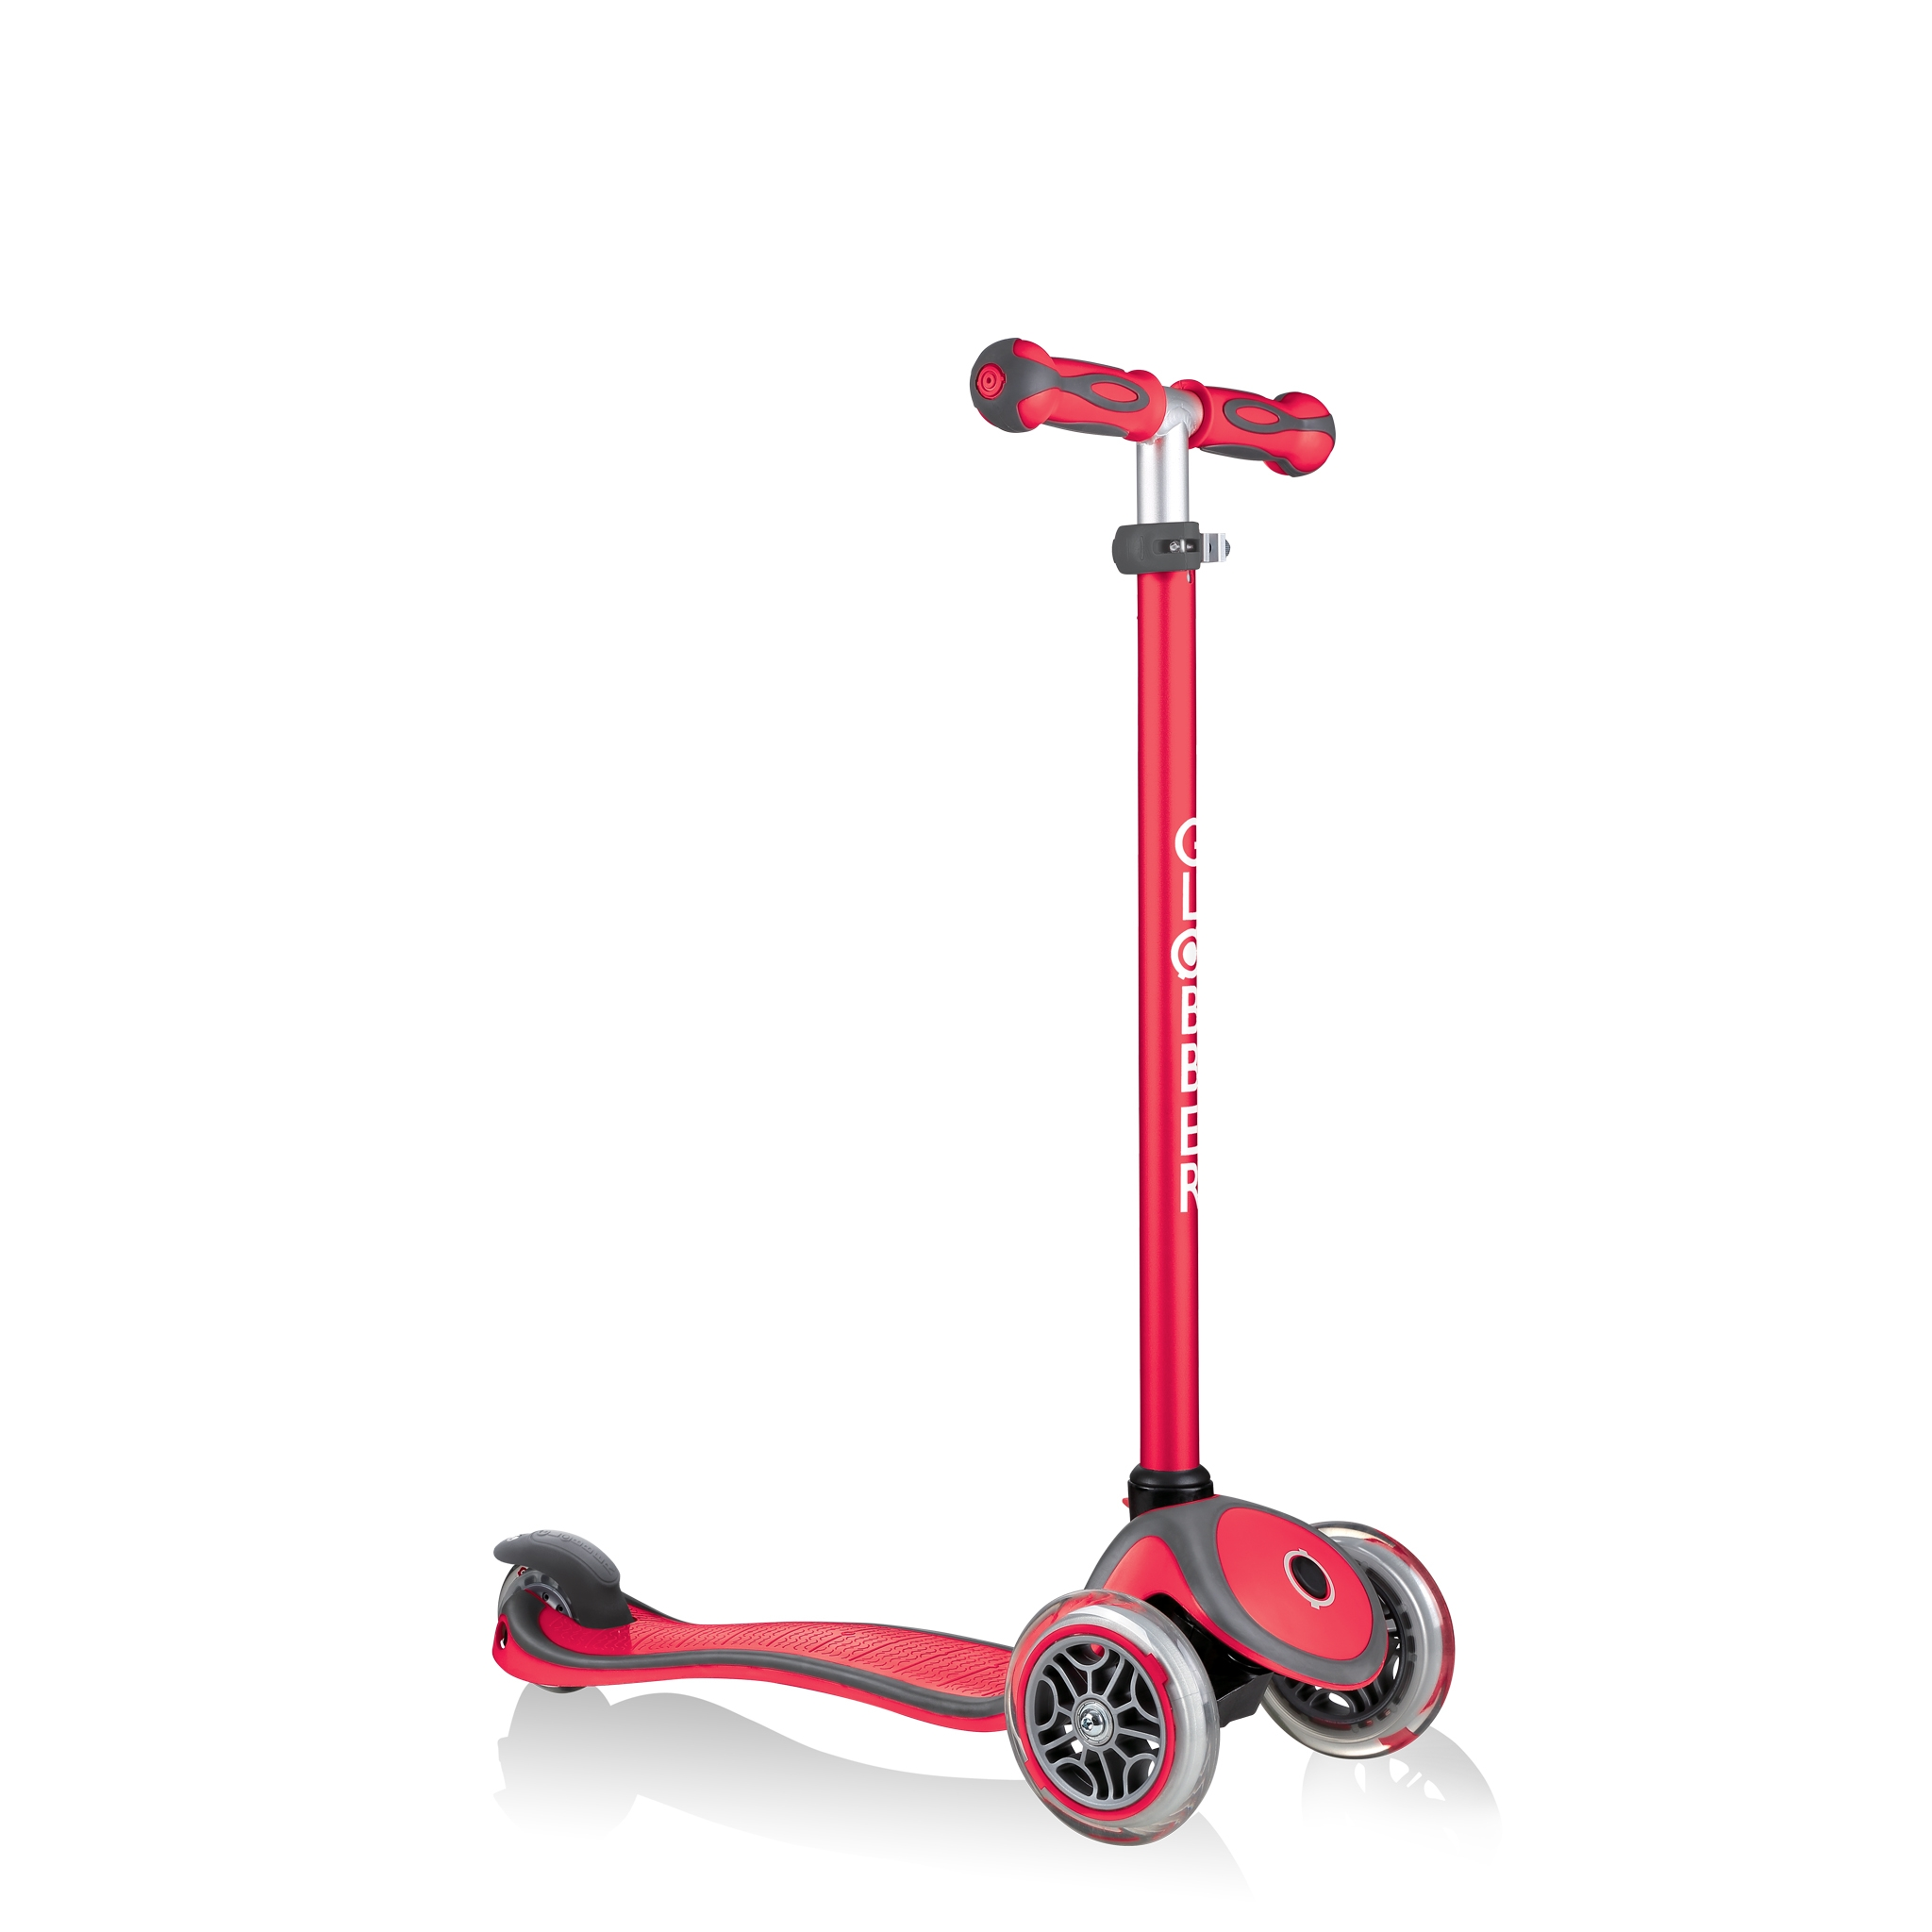 GO-UP-COMFORT-PLAY-ride-on-walking-bike-scooter-all-in-one-with-light-and-sound-module_new-red